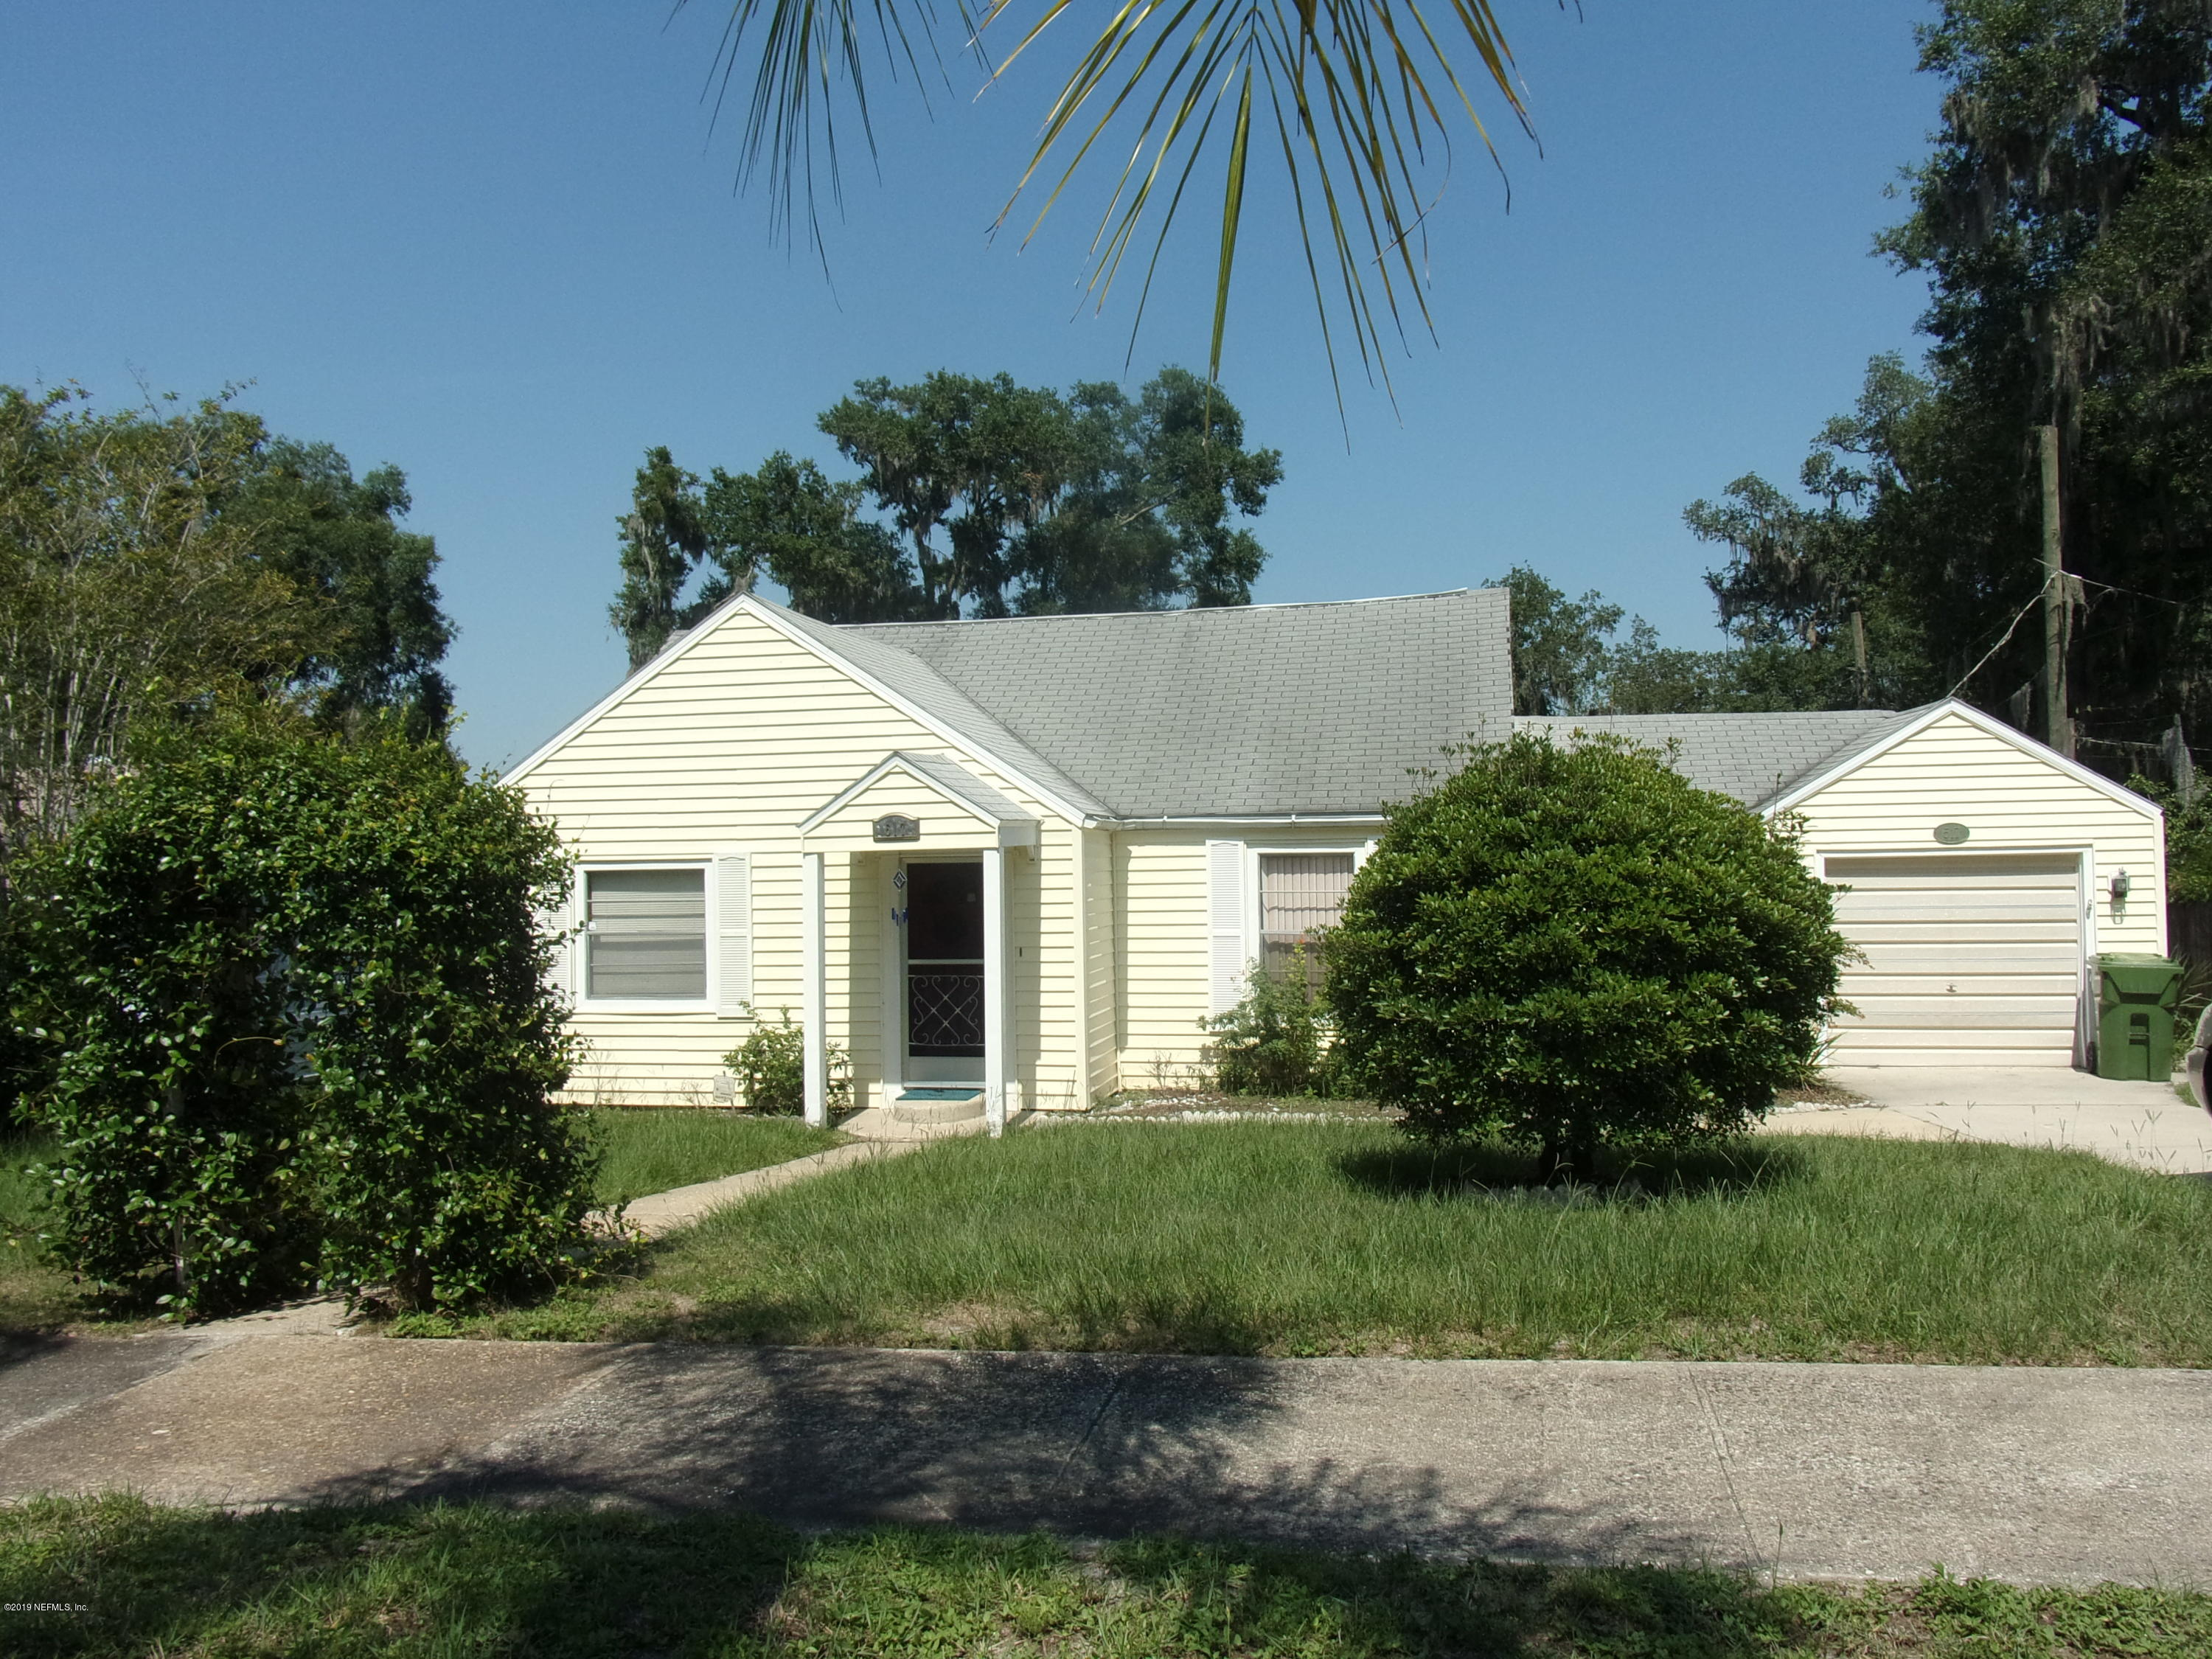 517 17TH, PALATKA, FLORIDA 32177, 2 Bedrooms Bedrooms, ,1 BathroomBathrooms,Residential,For sale,17TH,988650